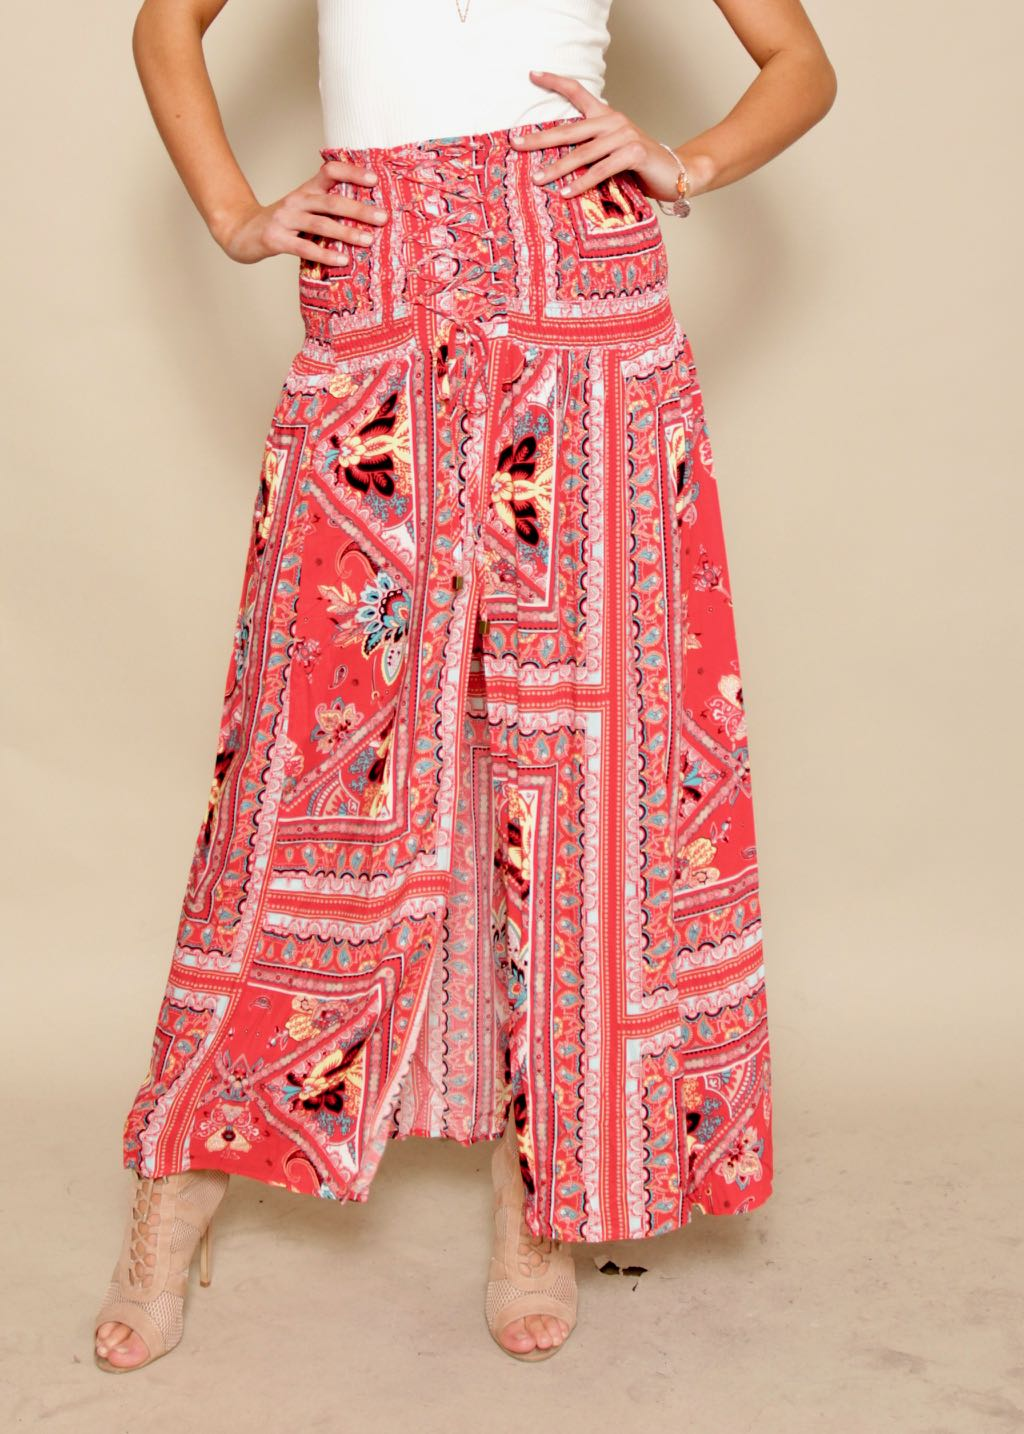 Elastic Lover Maxi Skirt - Red